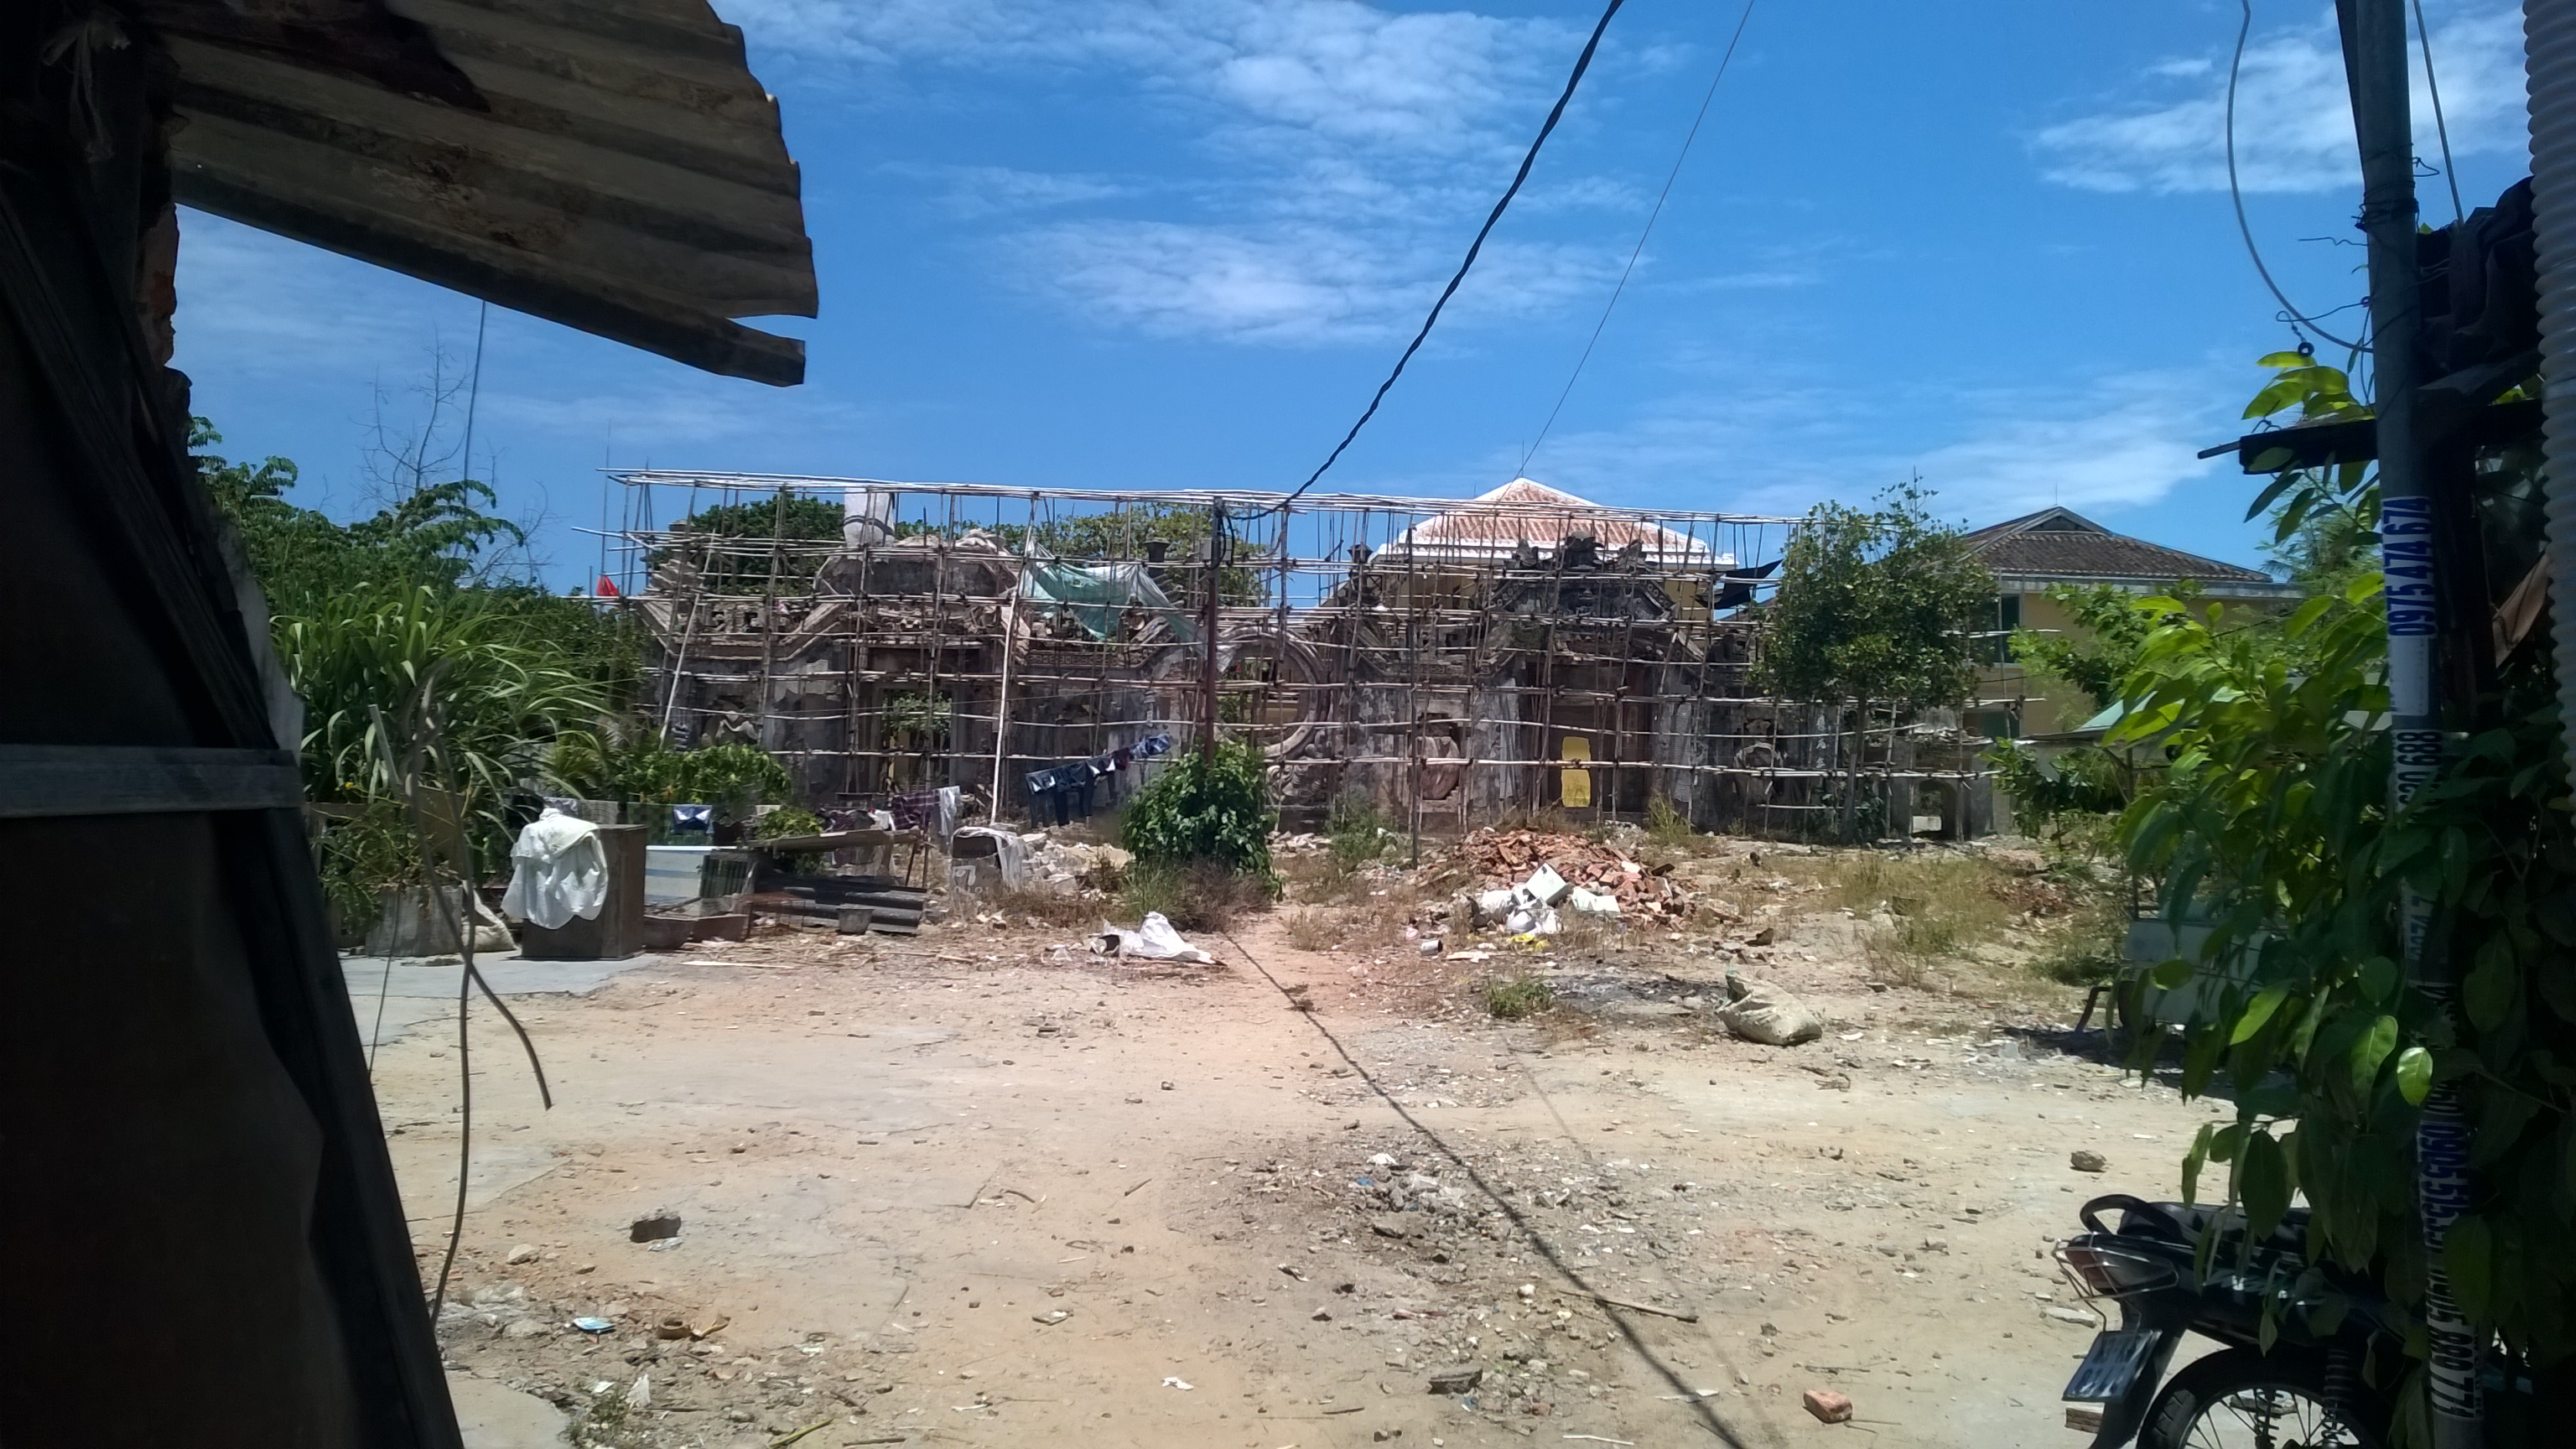 Temple being renovated in Hoi An in 2015.jpg English: A Temple being renovated in Hoi An in 2015. Date 25 August 2015, 12:14:52 Source Own